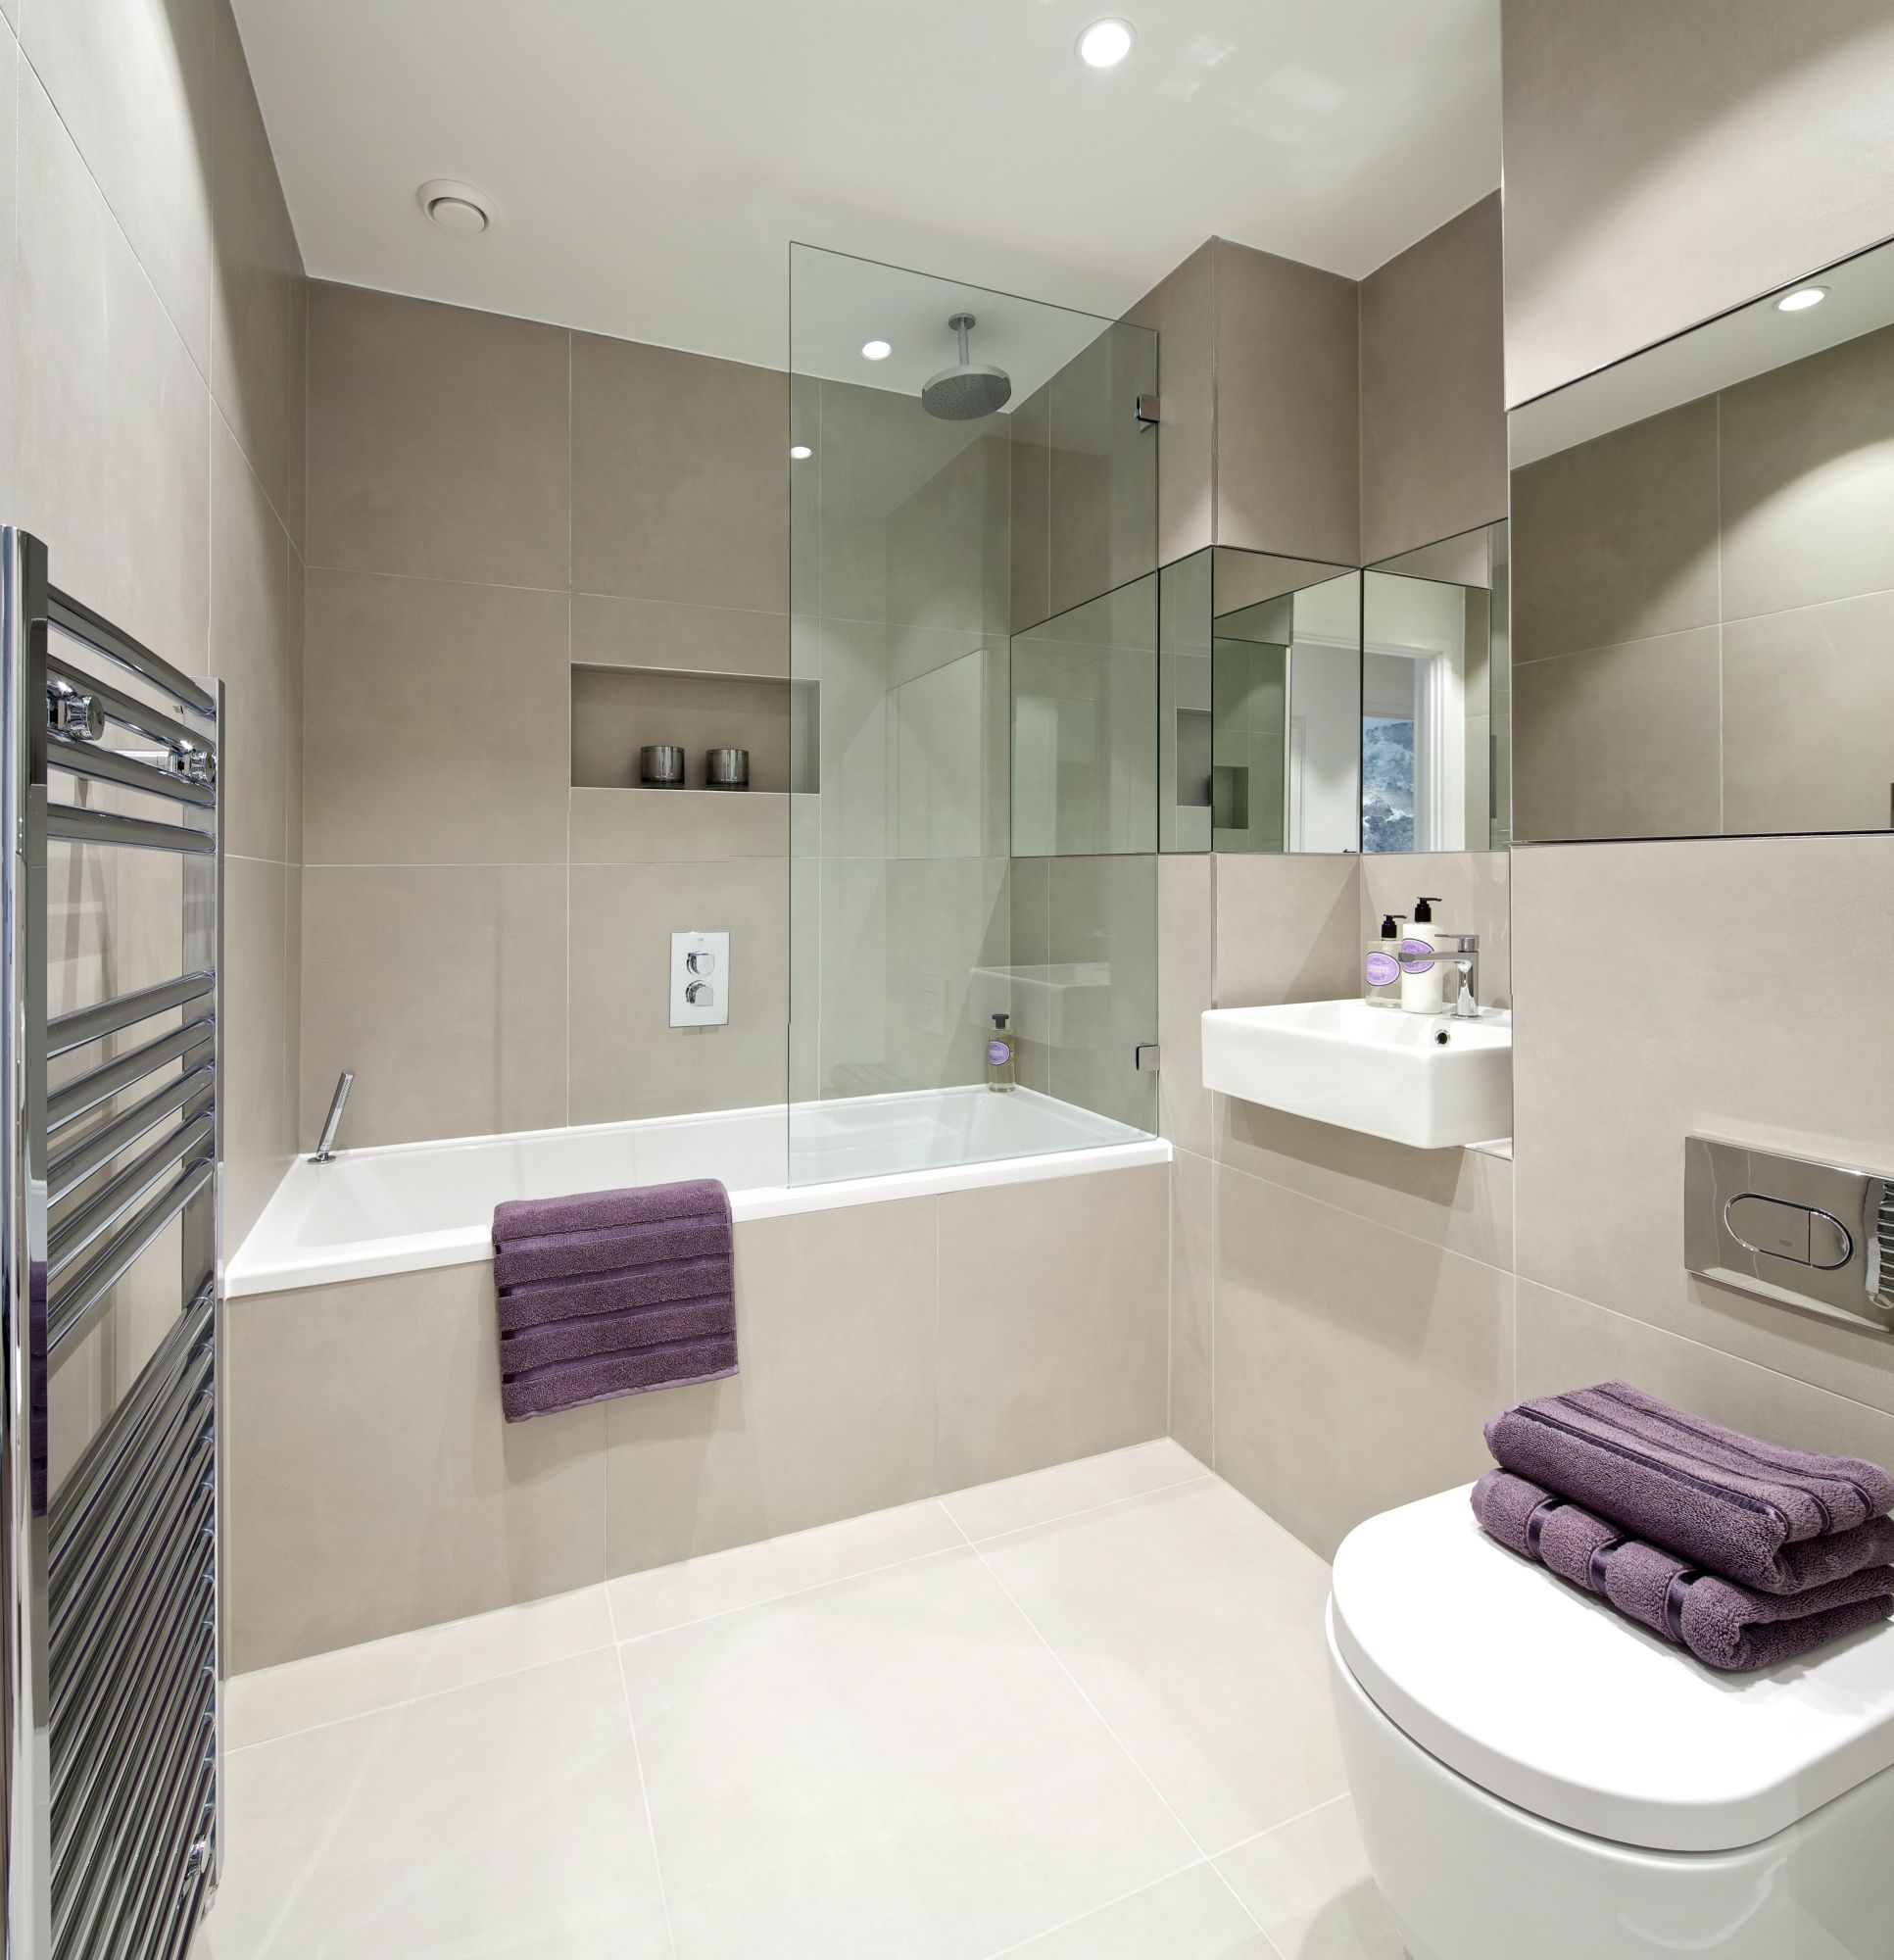 Stunning home interiors bathroom another stunning show for Bathroom style ideas